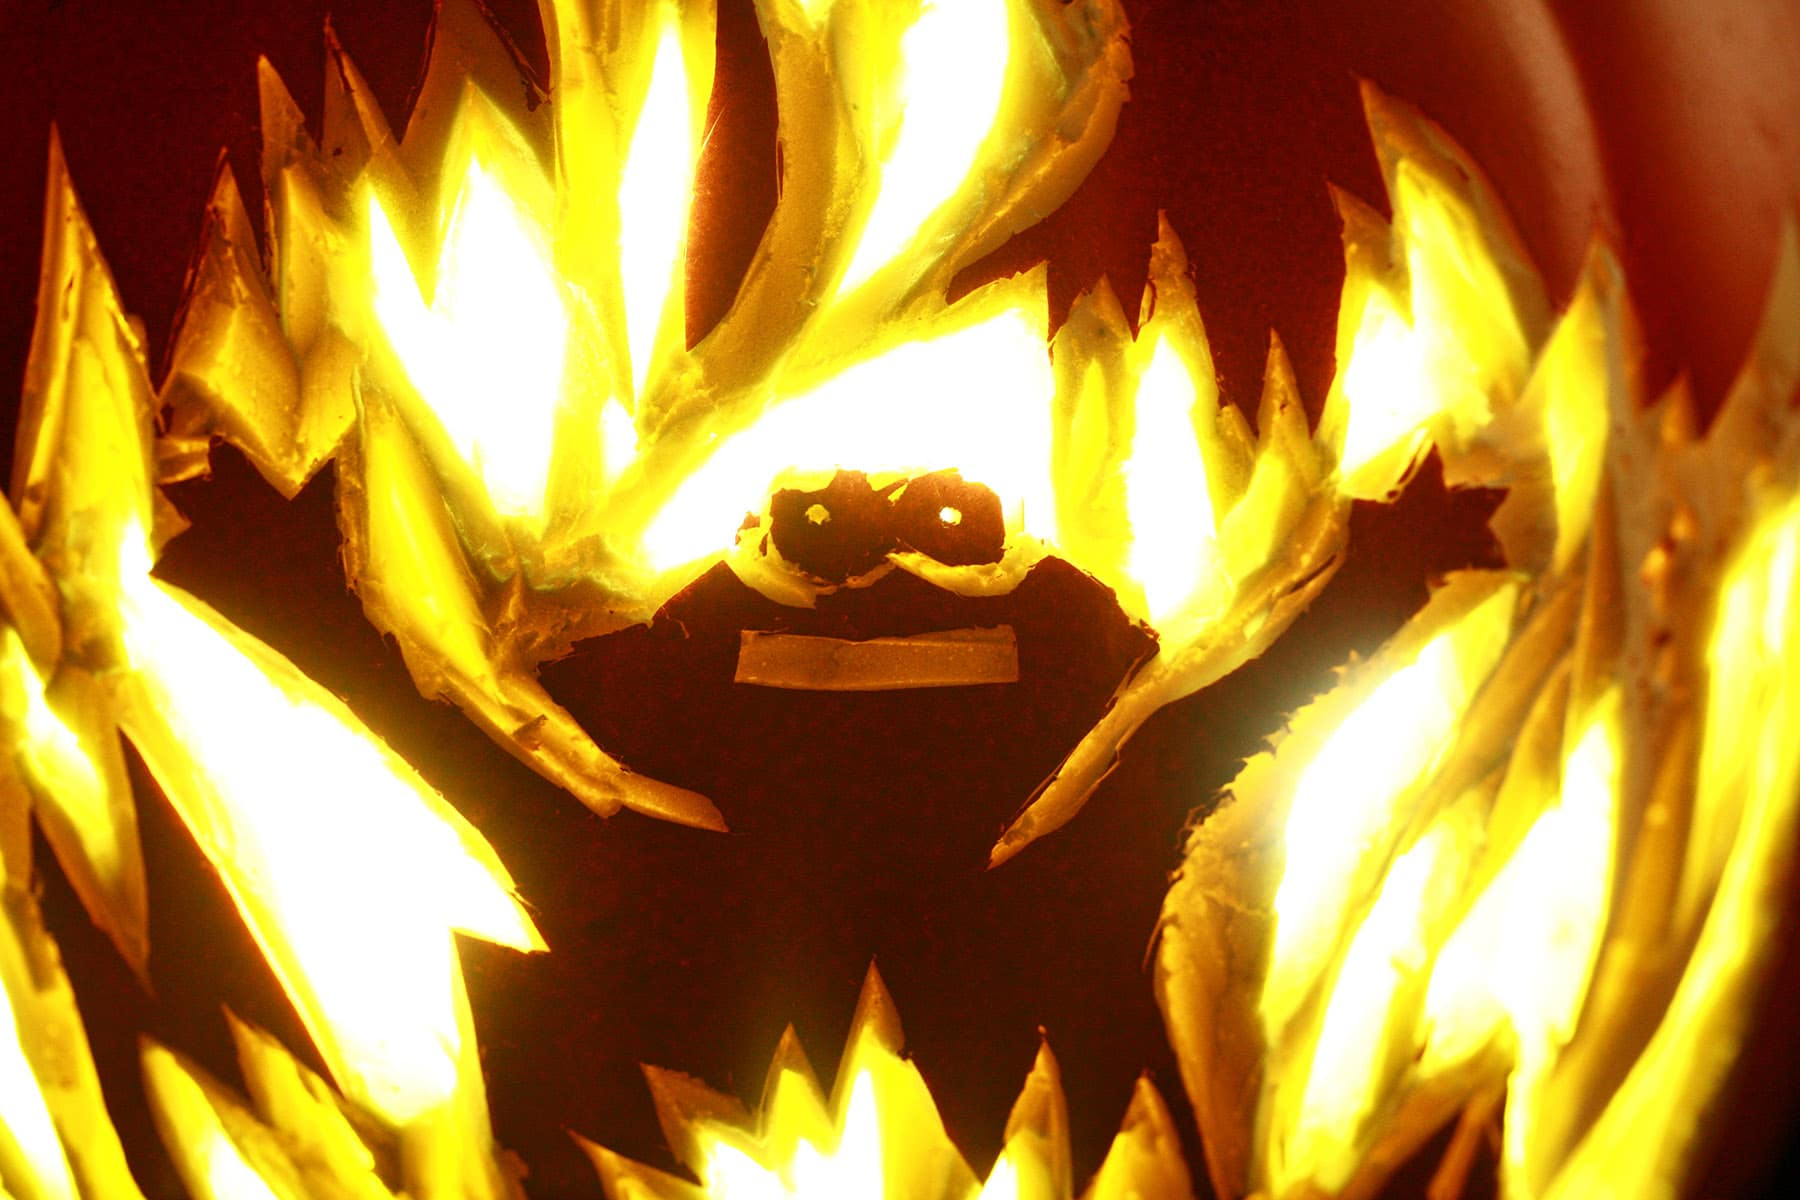 A close up view of a foam pumpkin shaved to look like Elmo in fire.